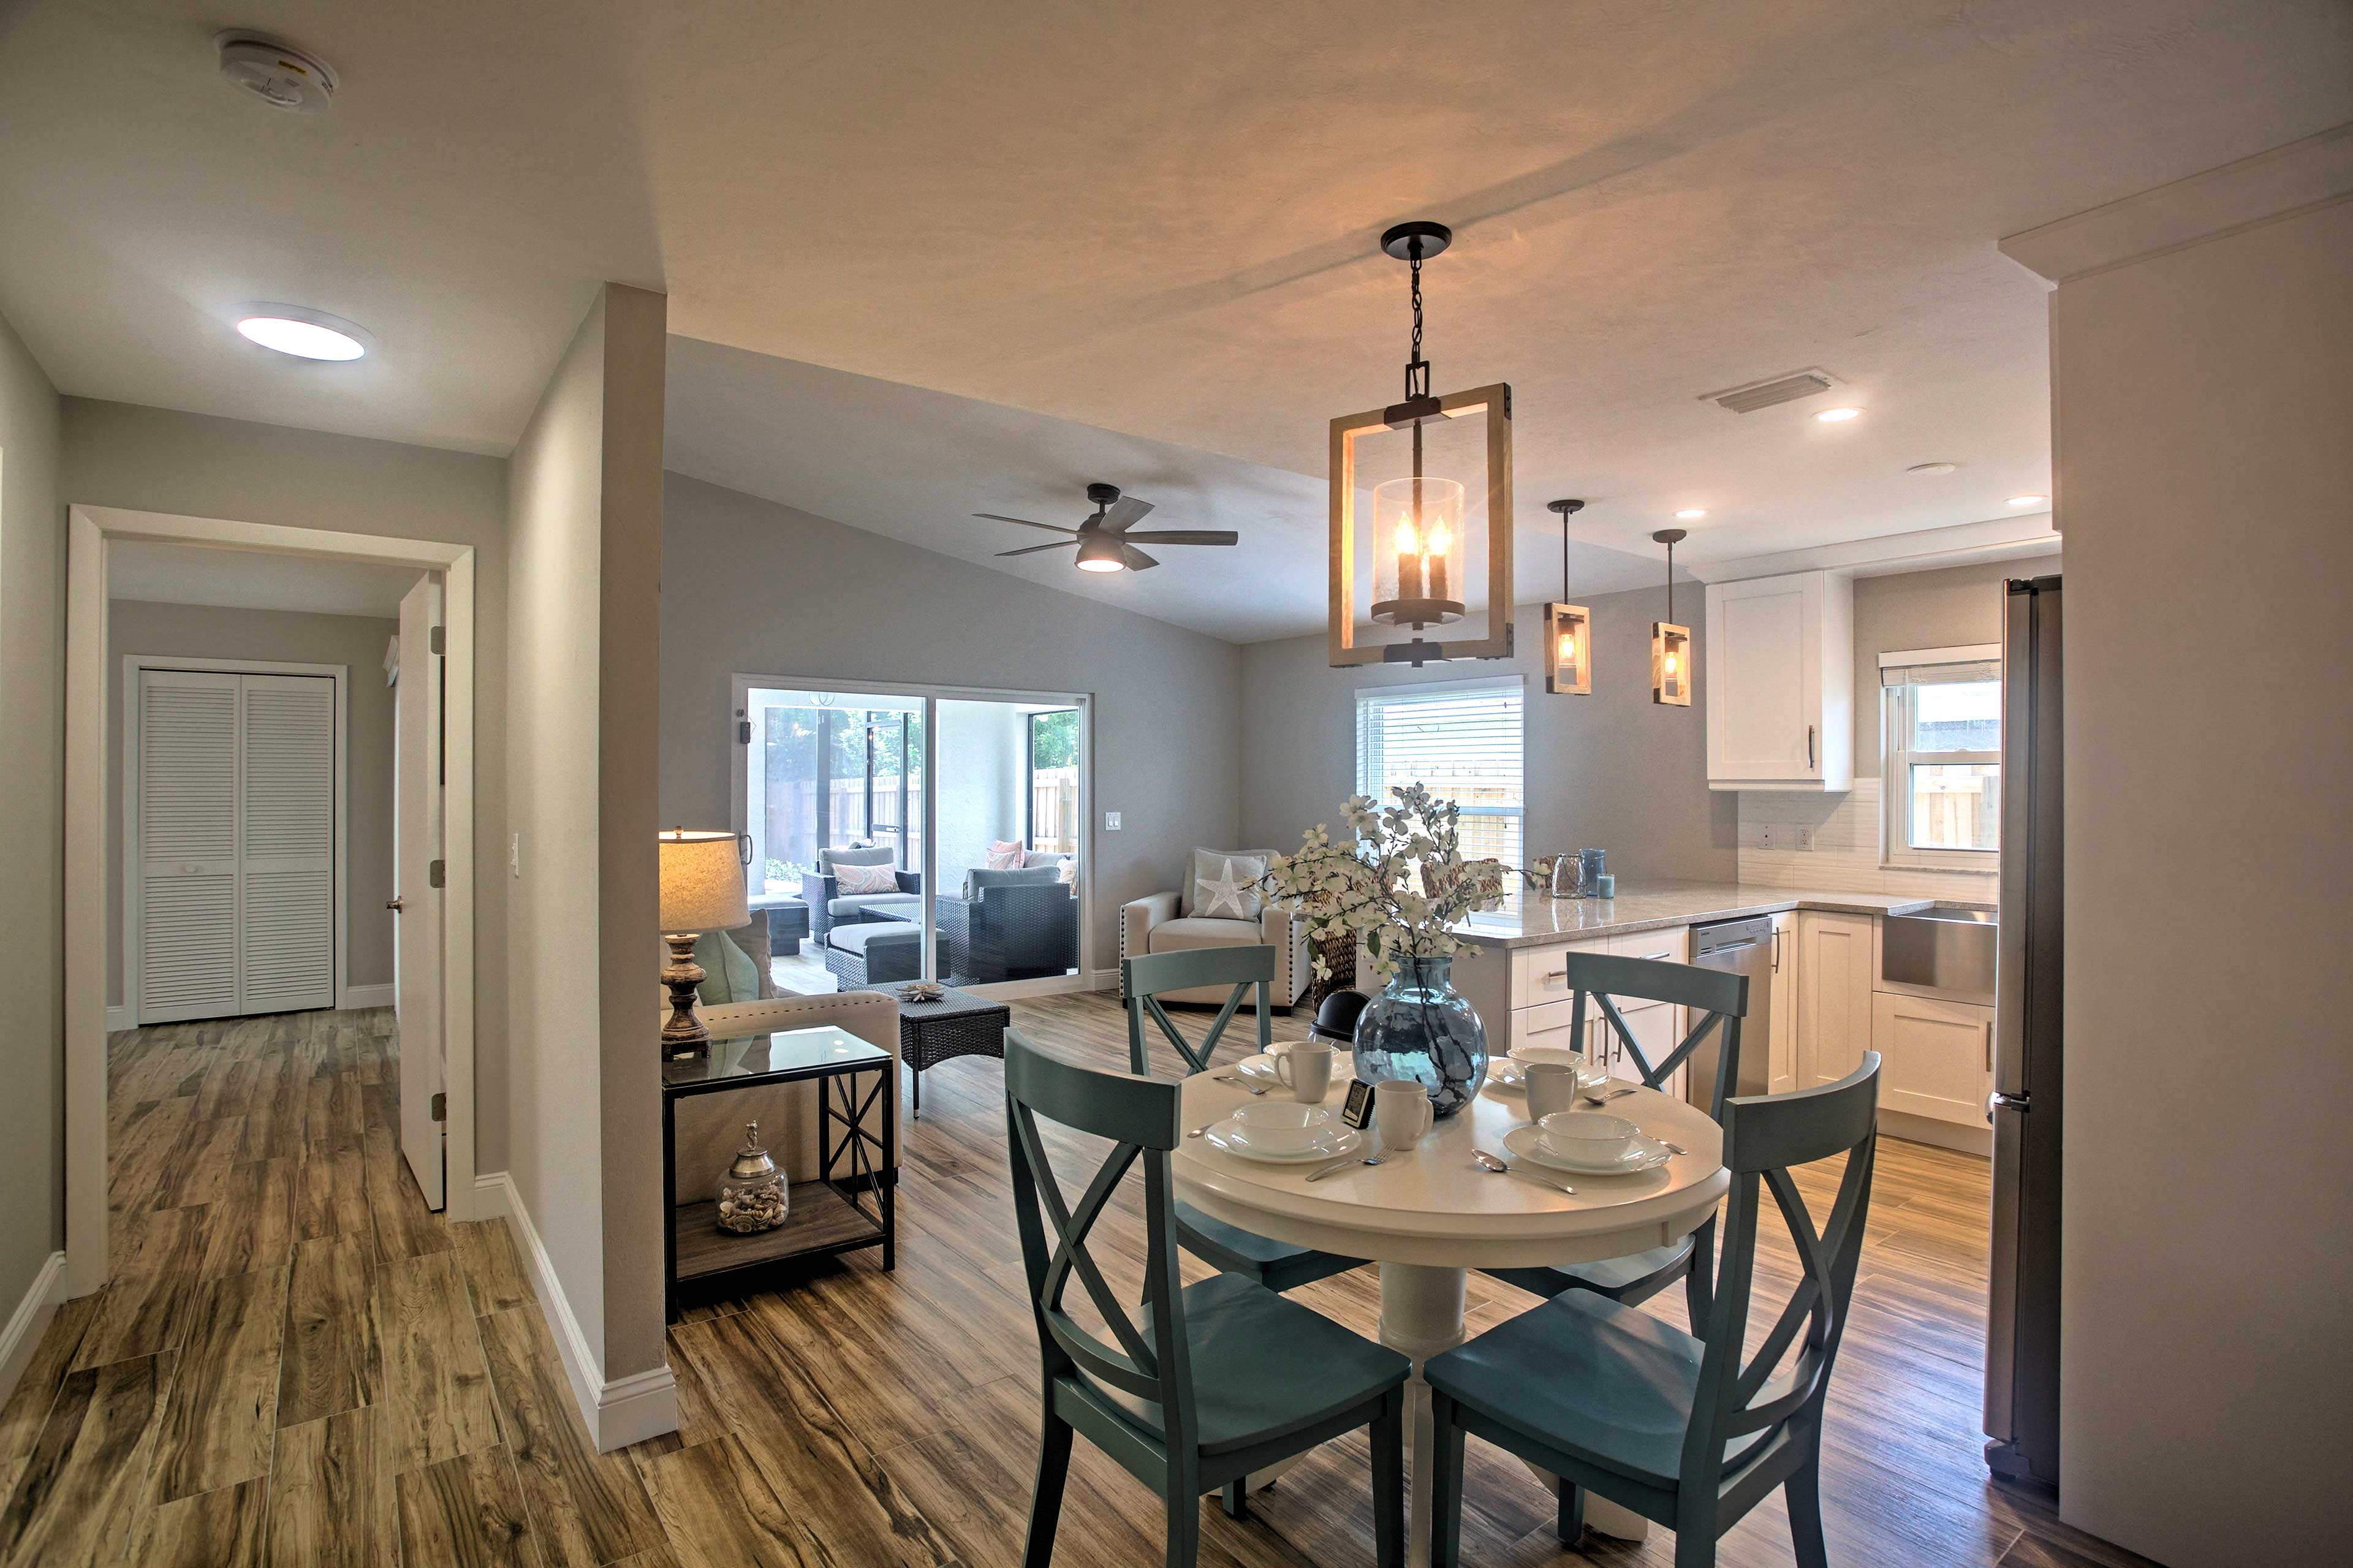 Once you've worked up a healthy appetite, head to the kitchen and dining area.